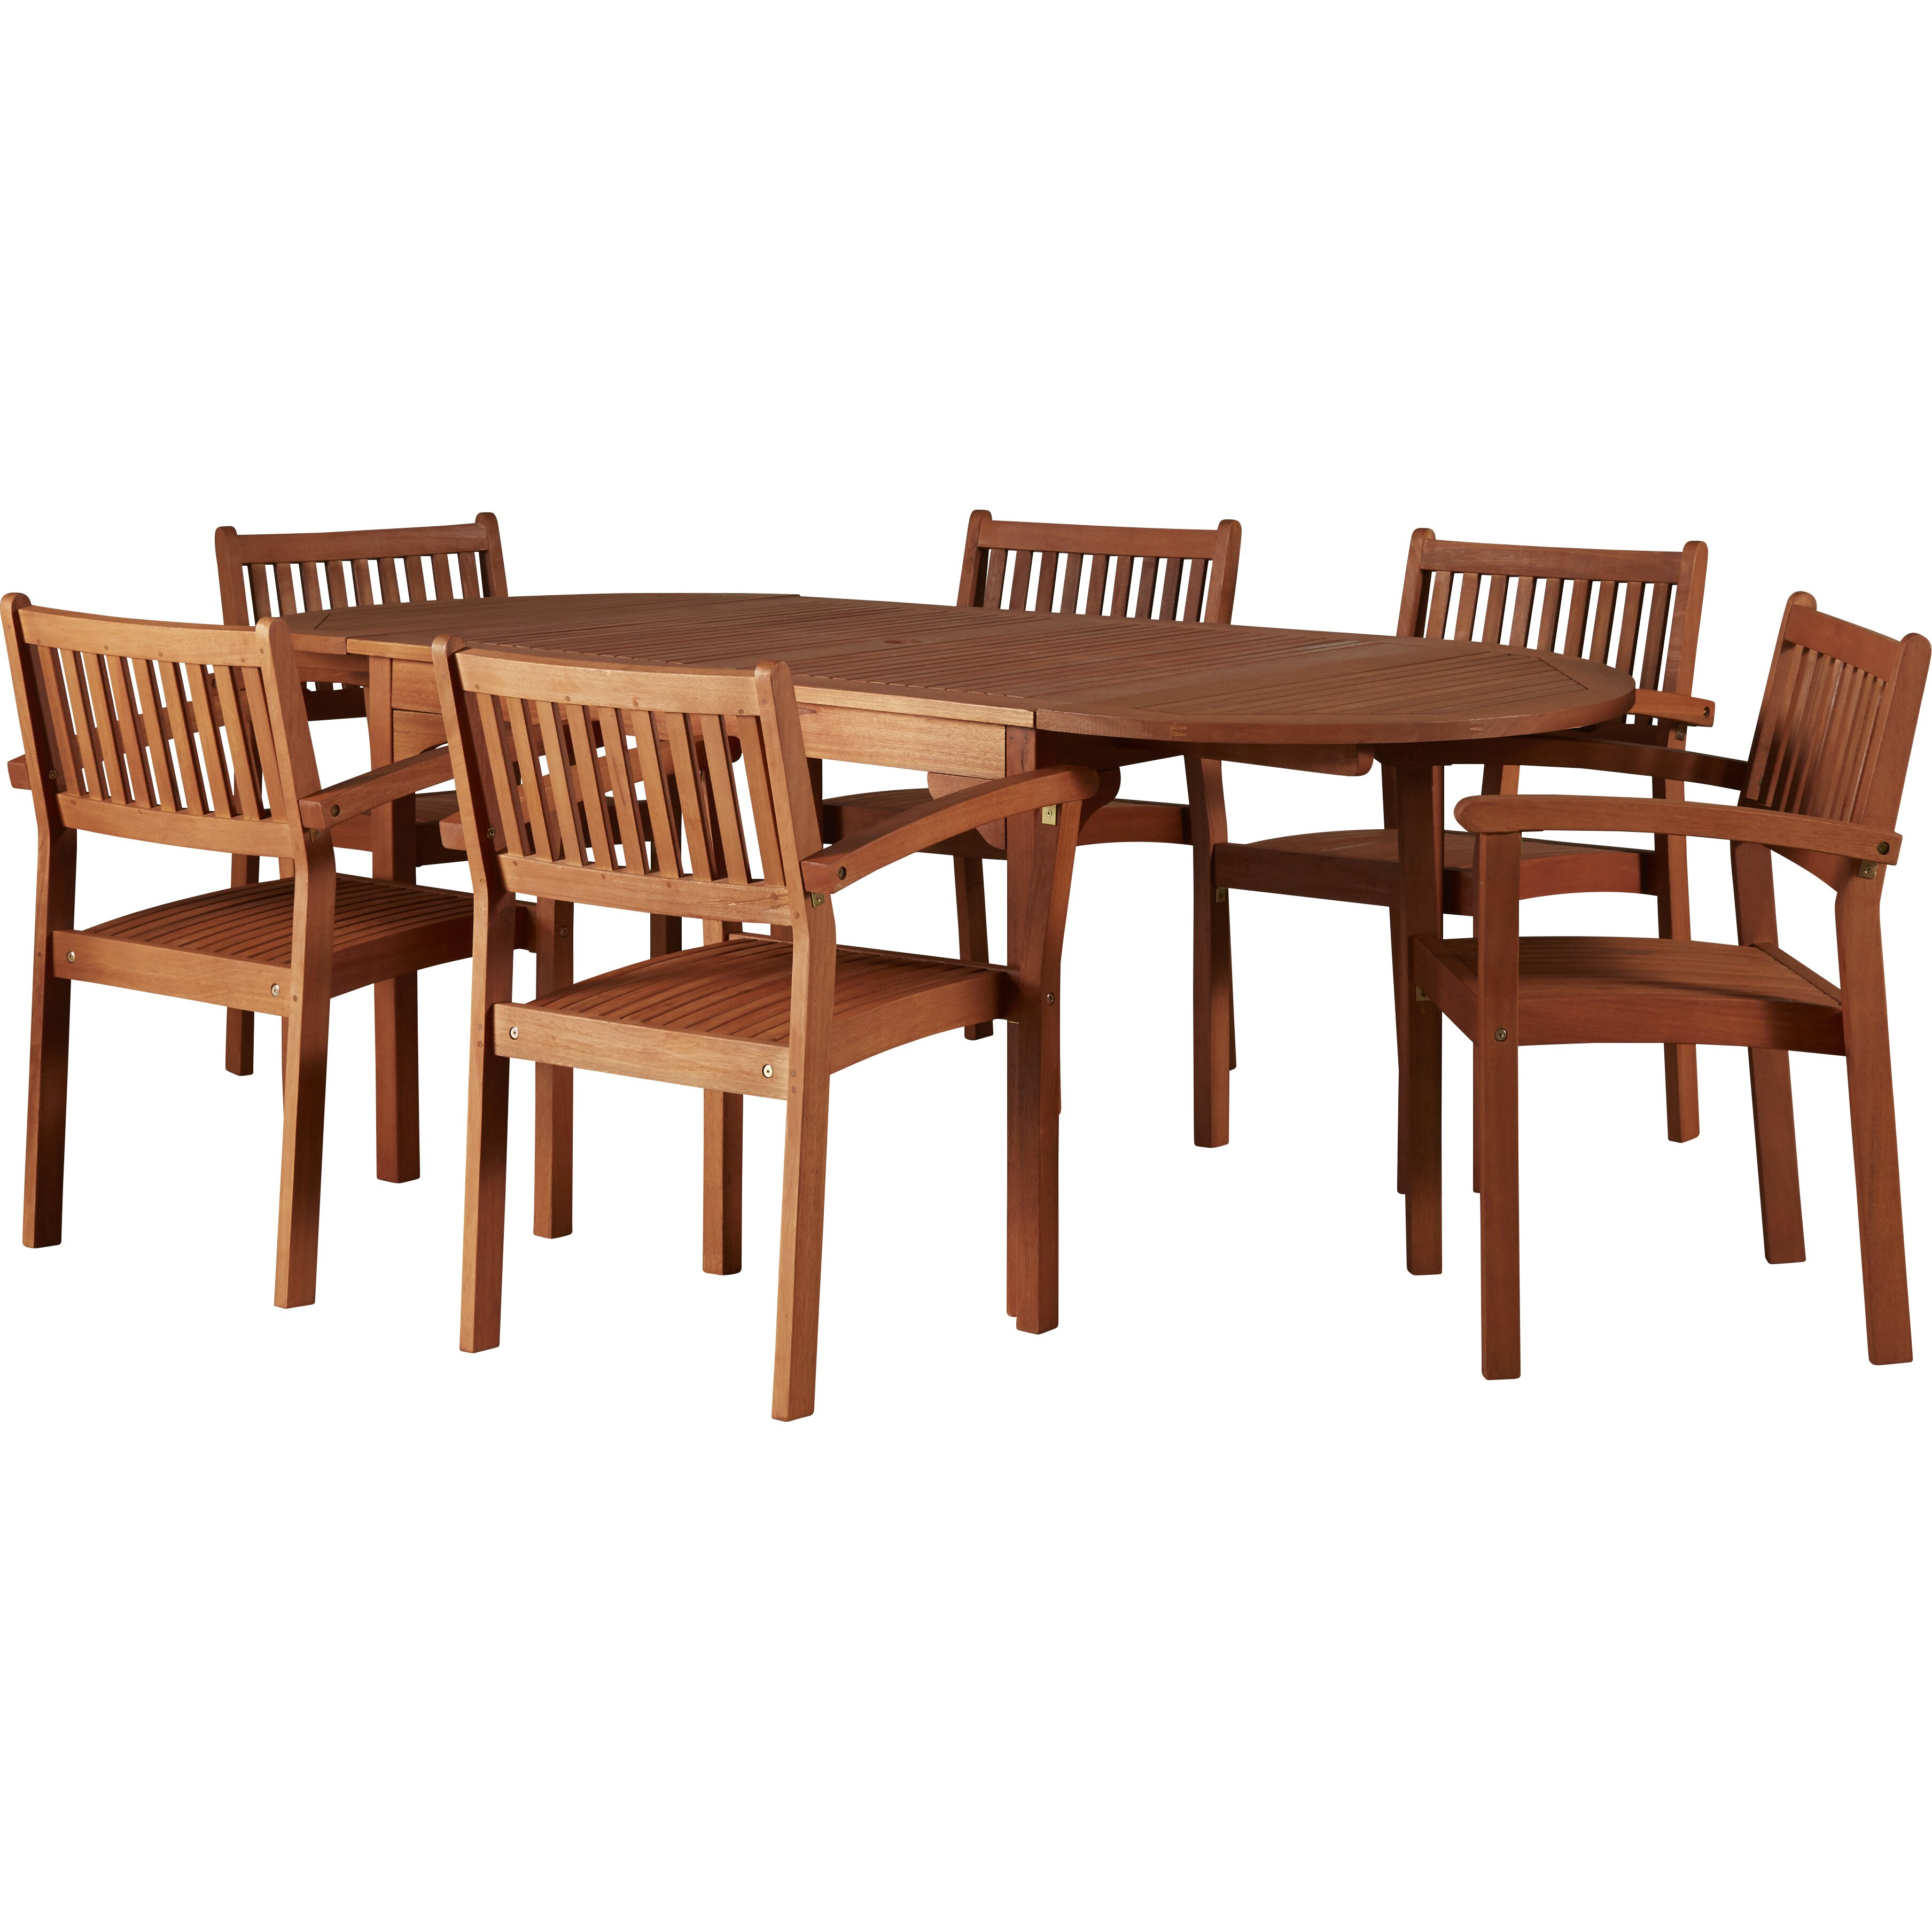 Very Impressive portraiture of Breakwater Bay Bucksport 7 Piece Dining Set & Reviews Wayfair with #3D170A color and 3616x3616 pixels